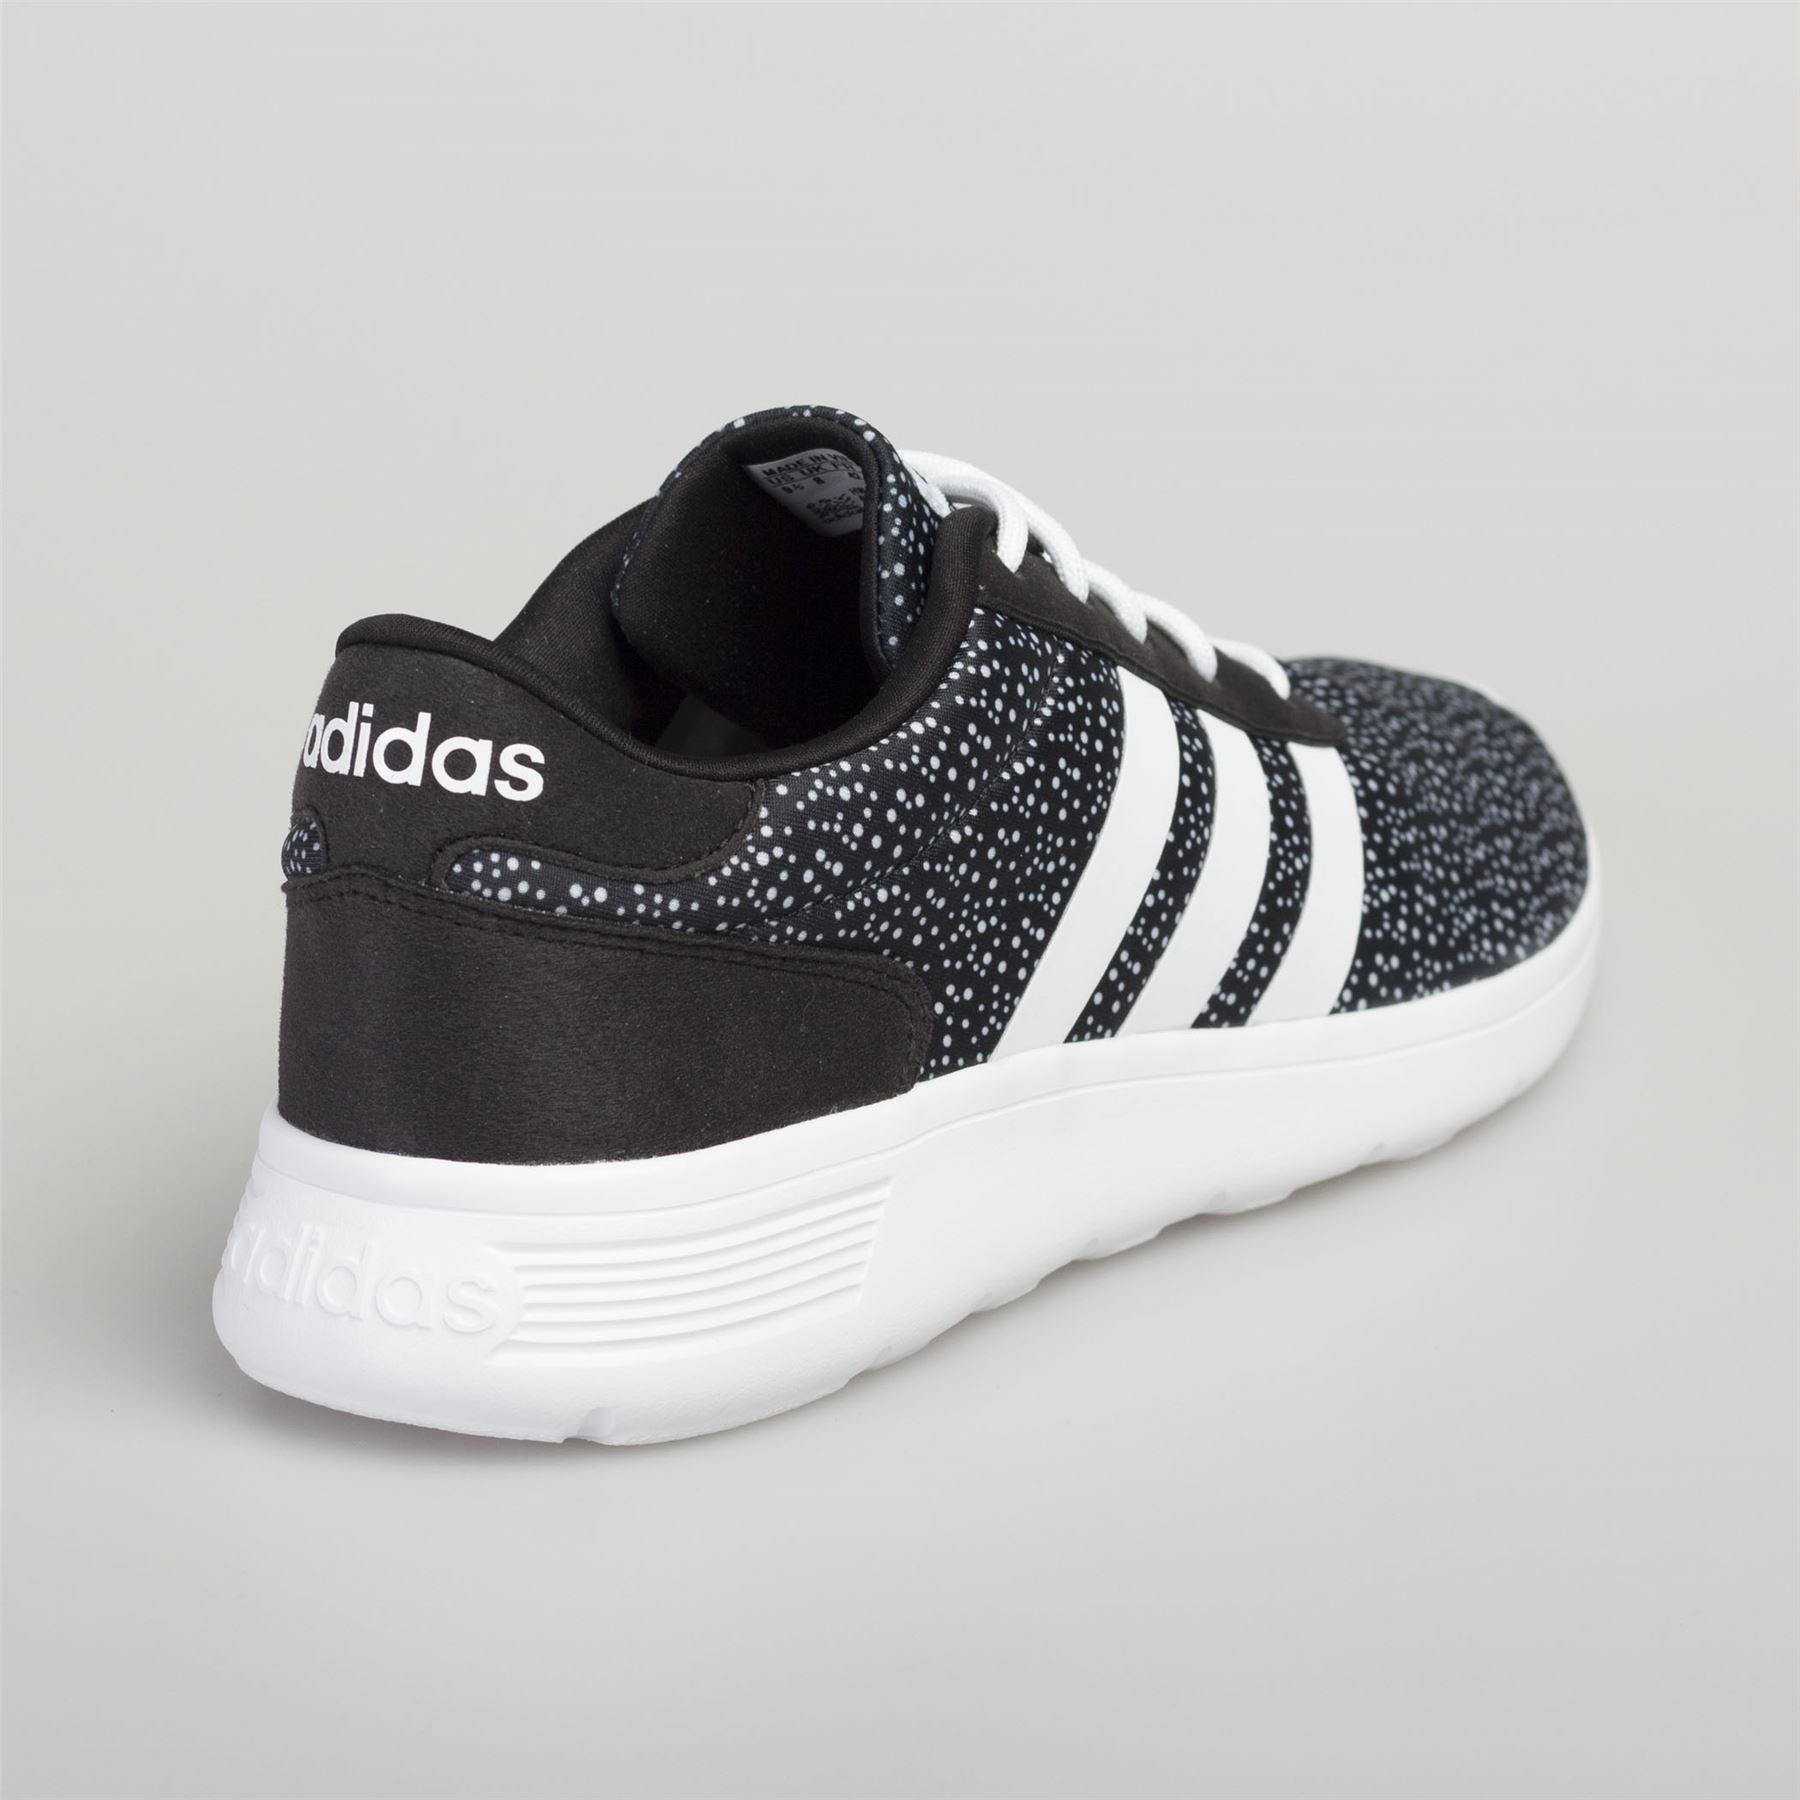 Adidas Men s Women s Leather Trainers Calneo Lite Racer Hoops VL Black White  Women Leather Trainers e738759d8